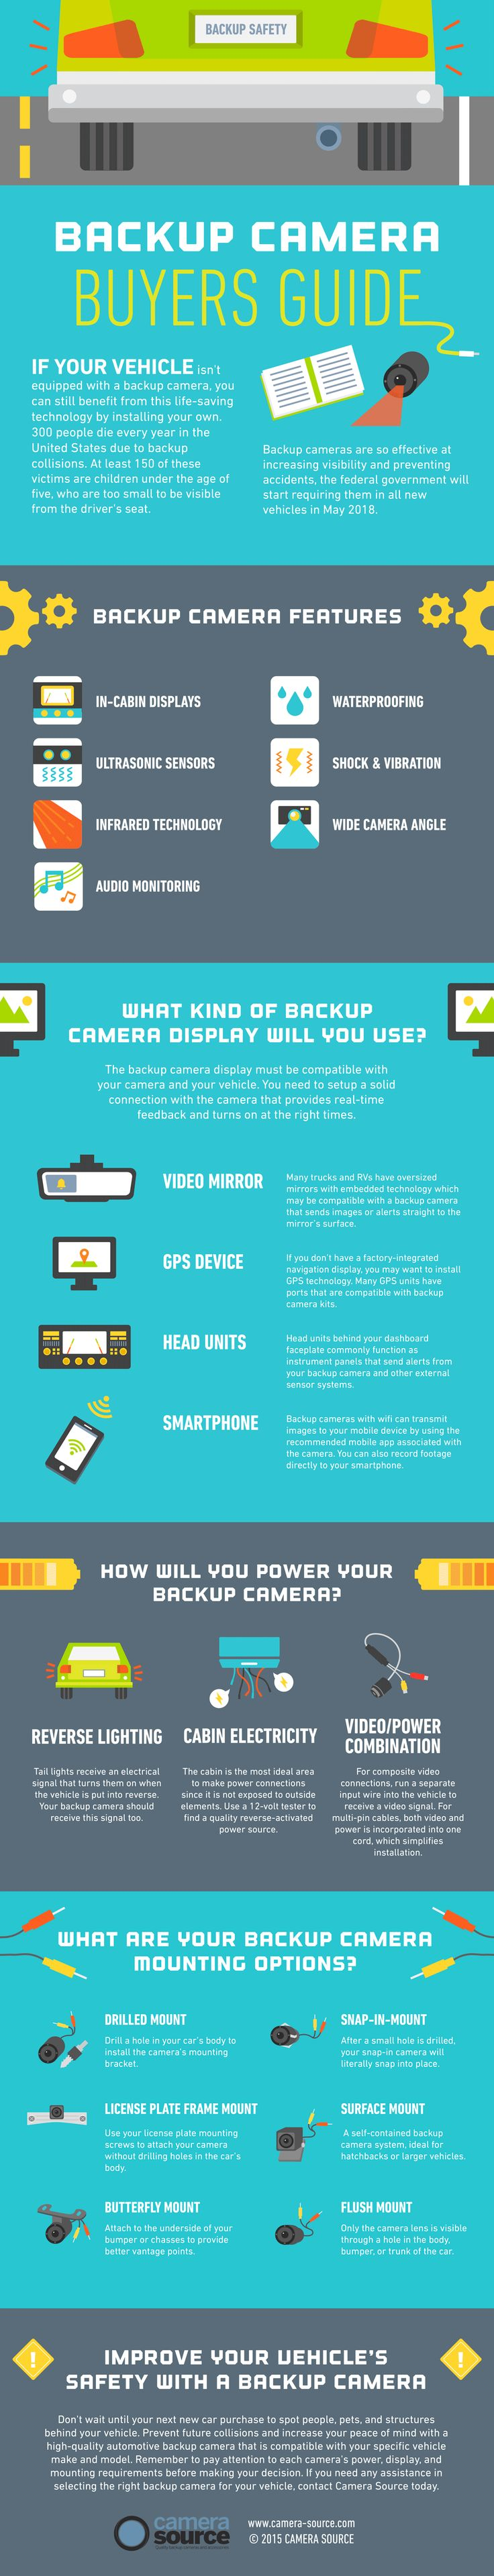 Backup Camera Buyers Guide #infographic #Transportation